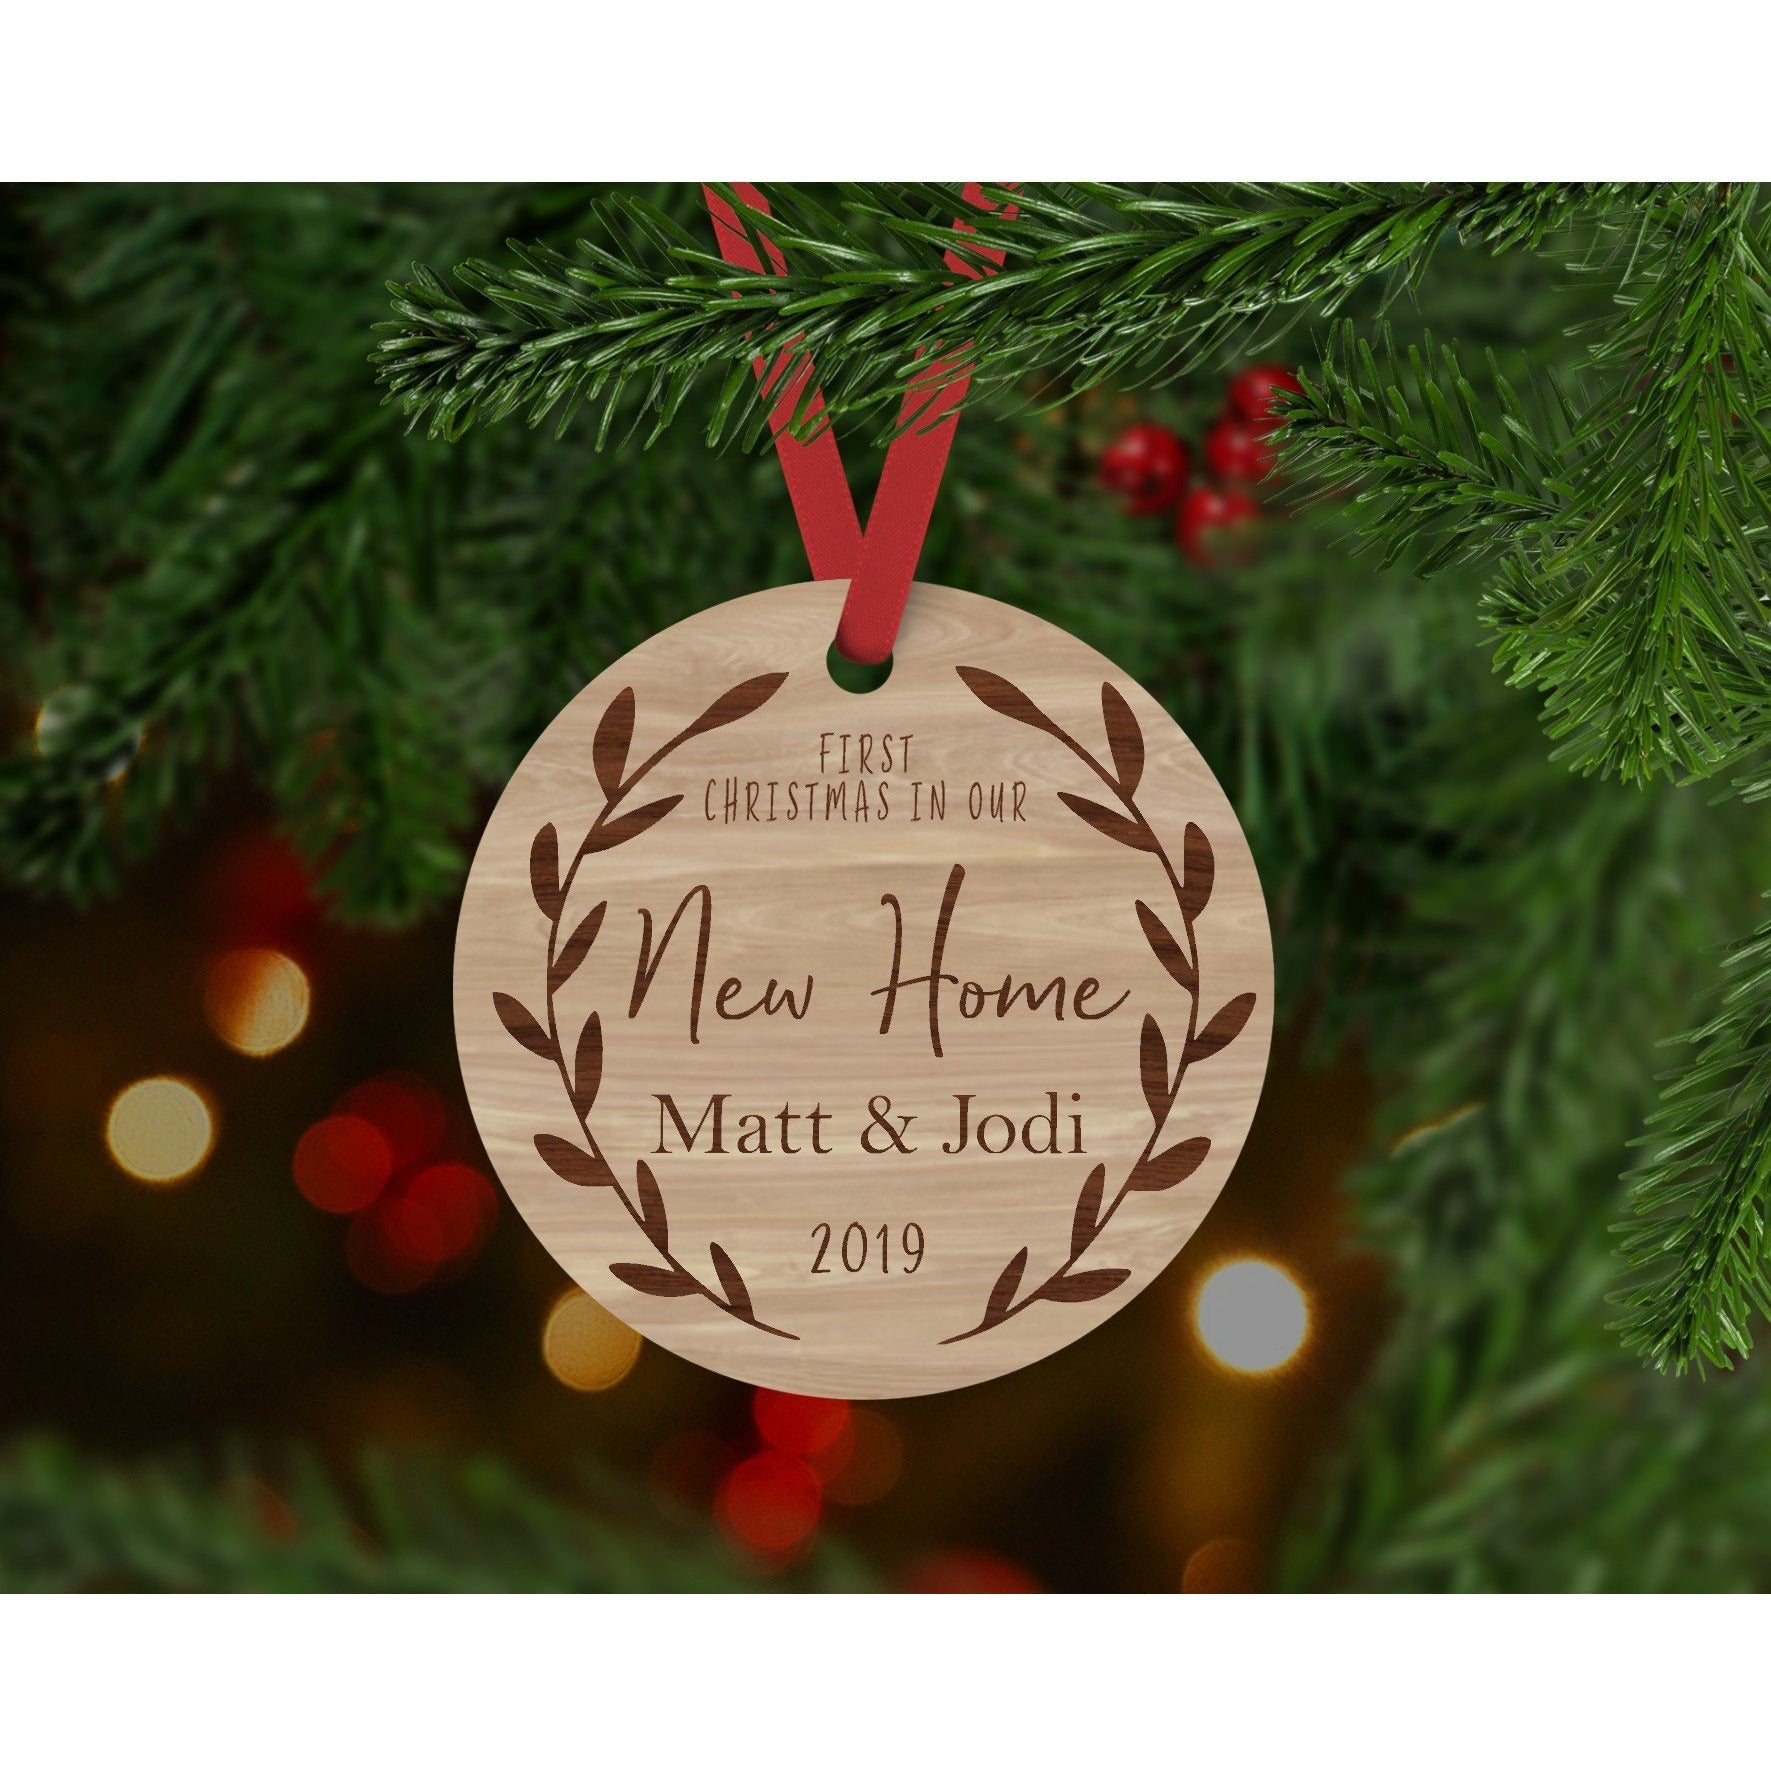 First Christmas In Our New Home 2019.Our First Christmas In Our New Home Personalised Christmas Bauble